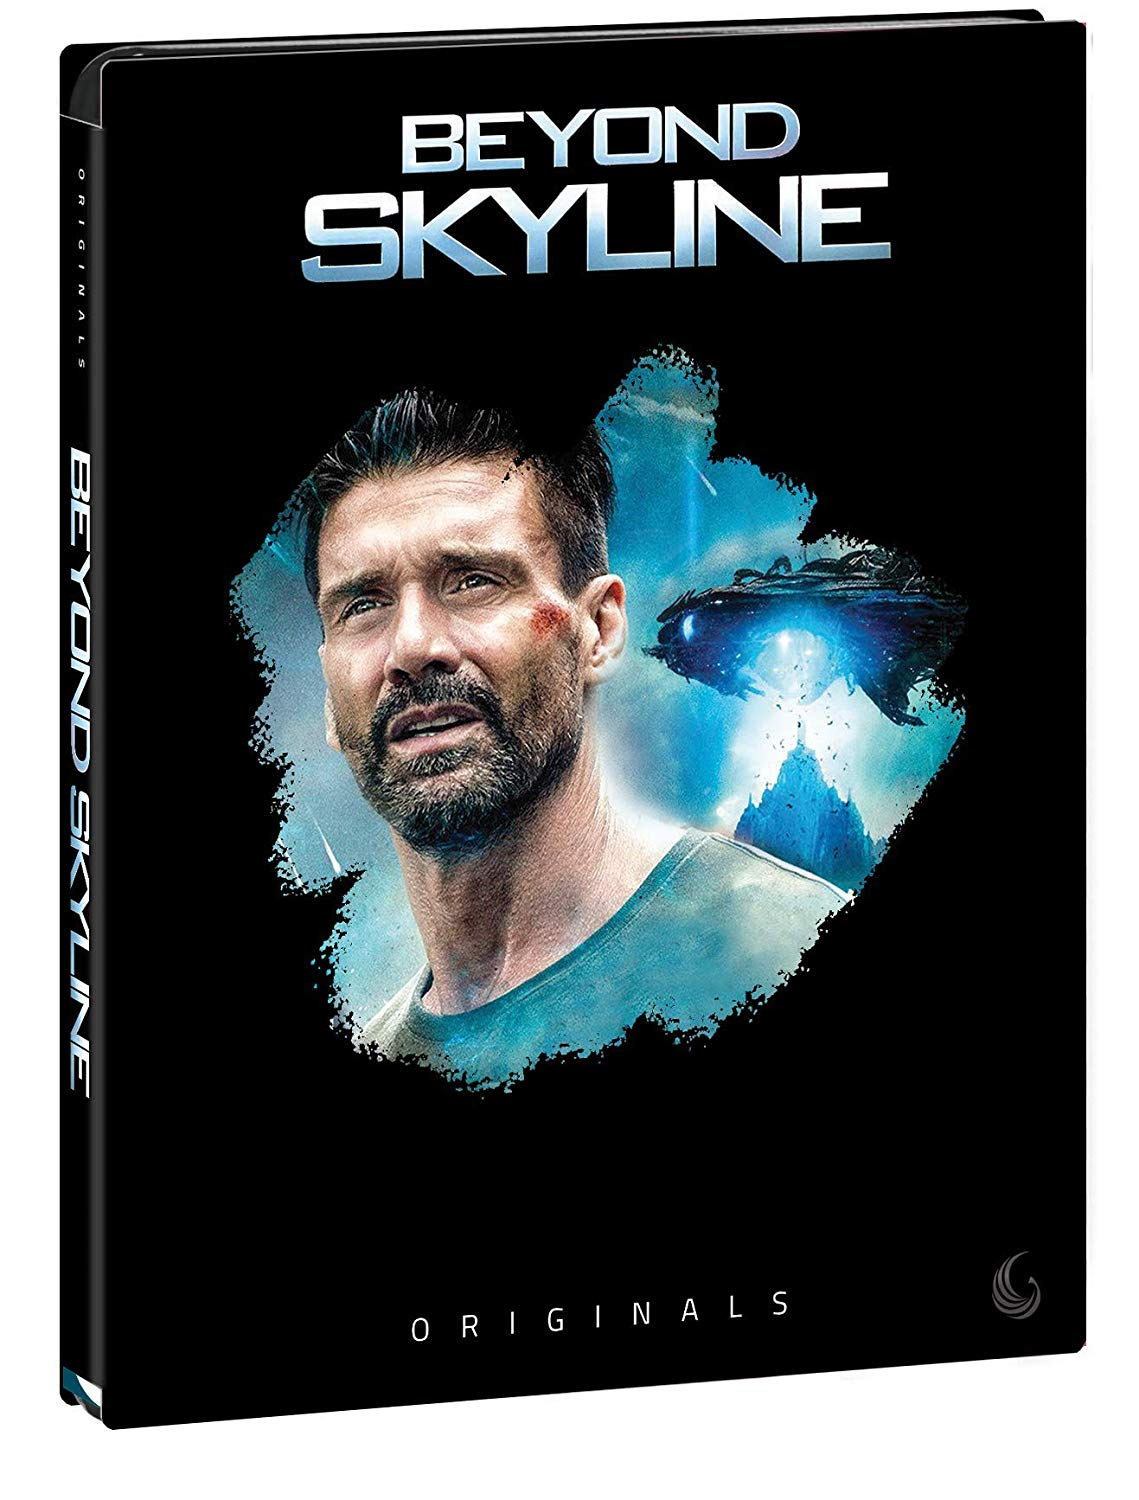 BEYOND SKYLINE (BLU-RAY+DVD)